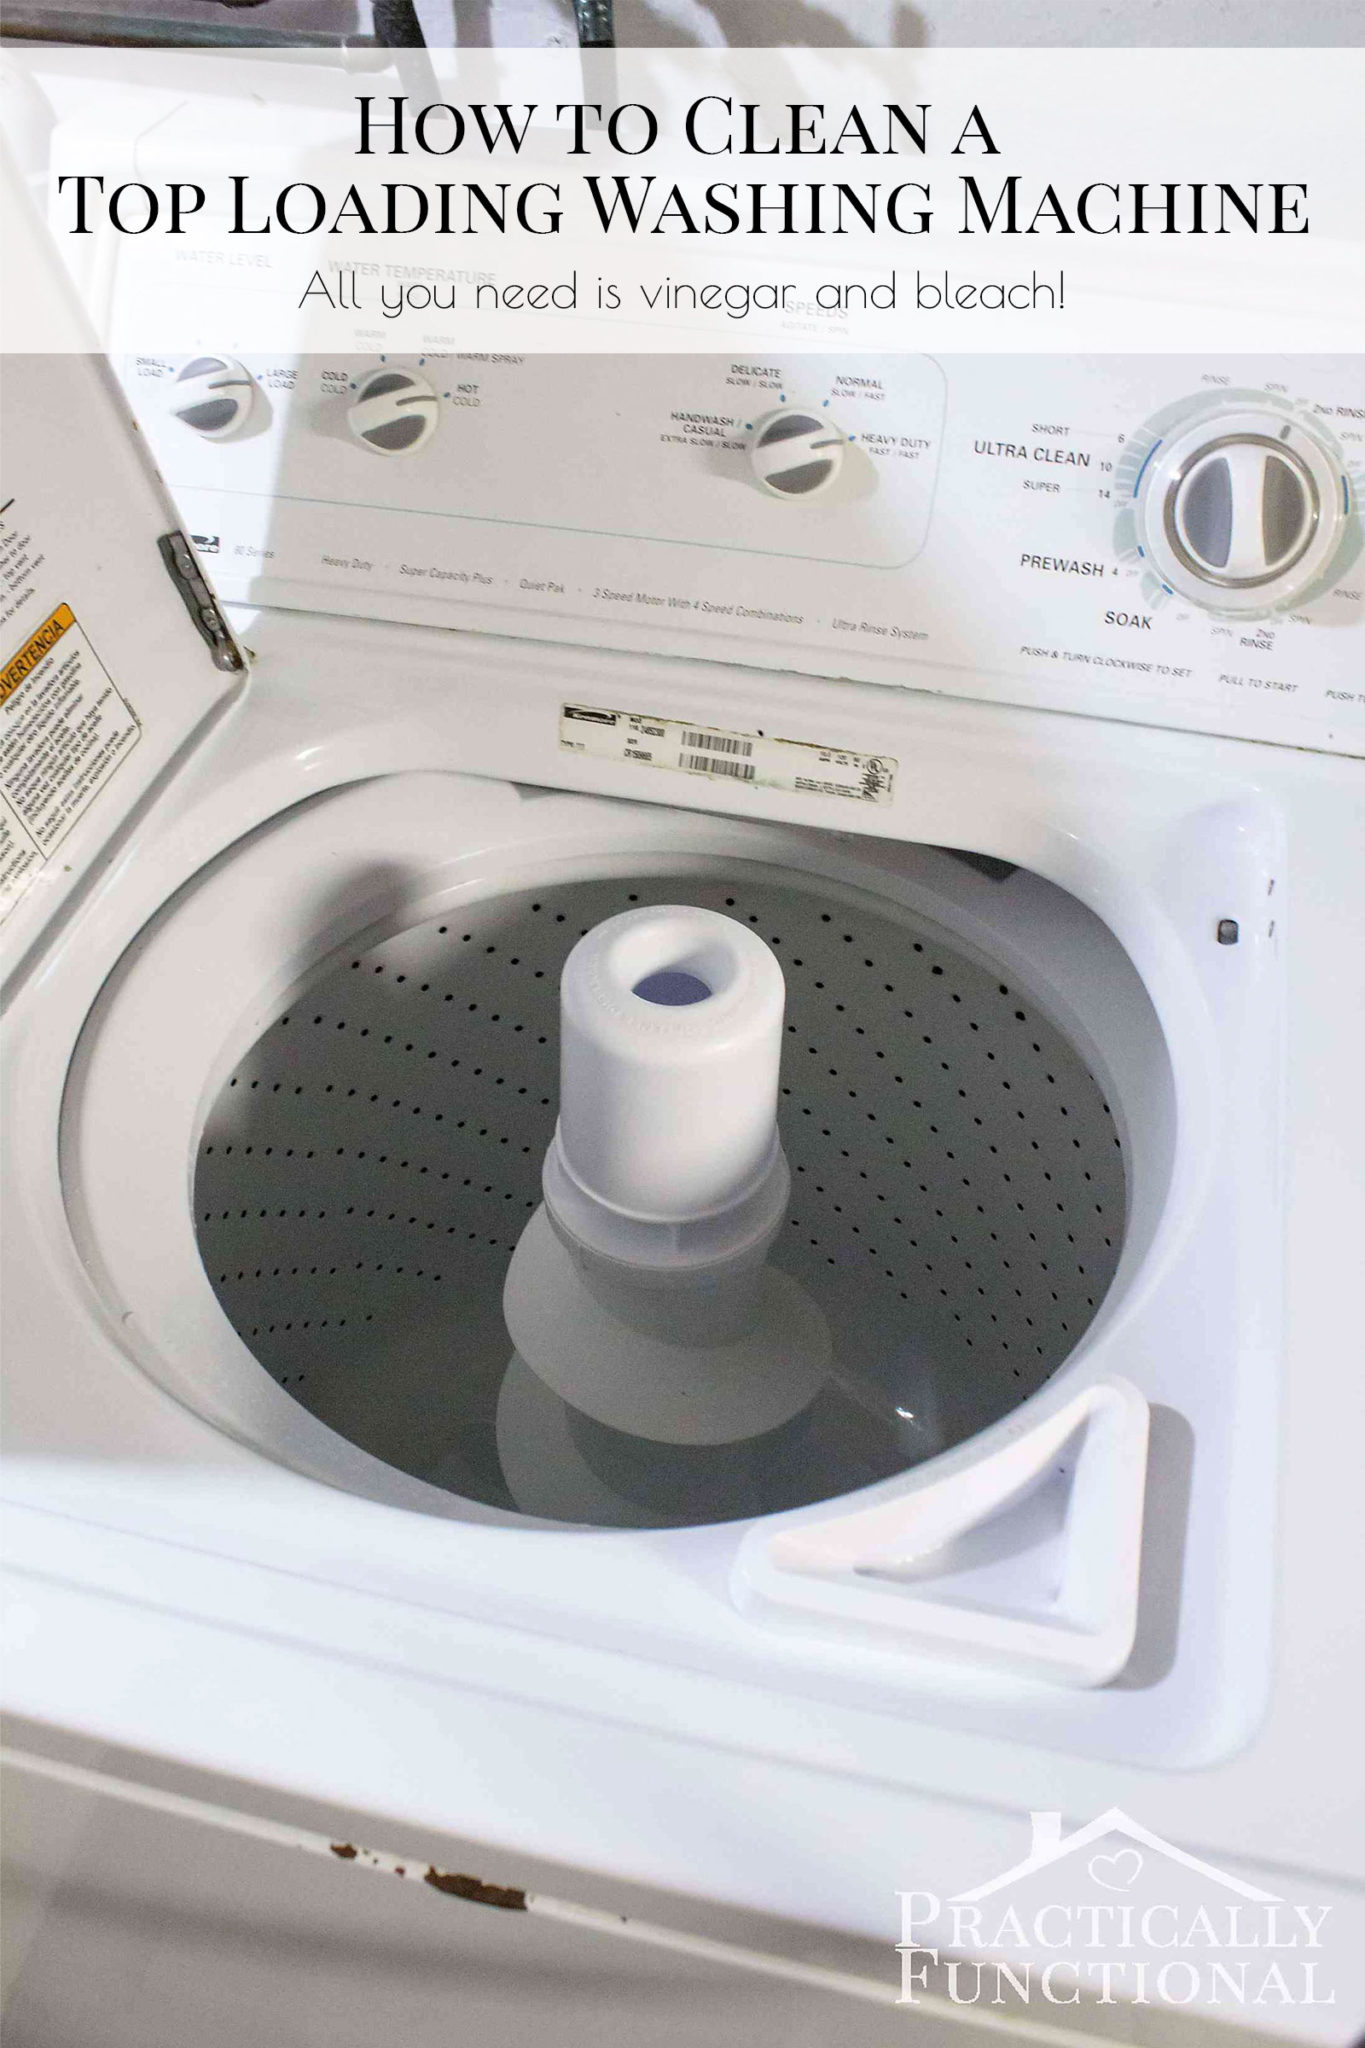 How to clean a washing machine with vinegar and bleach - Just two wash cycles and you're done!